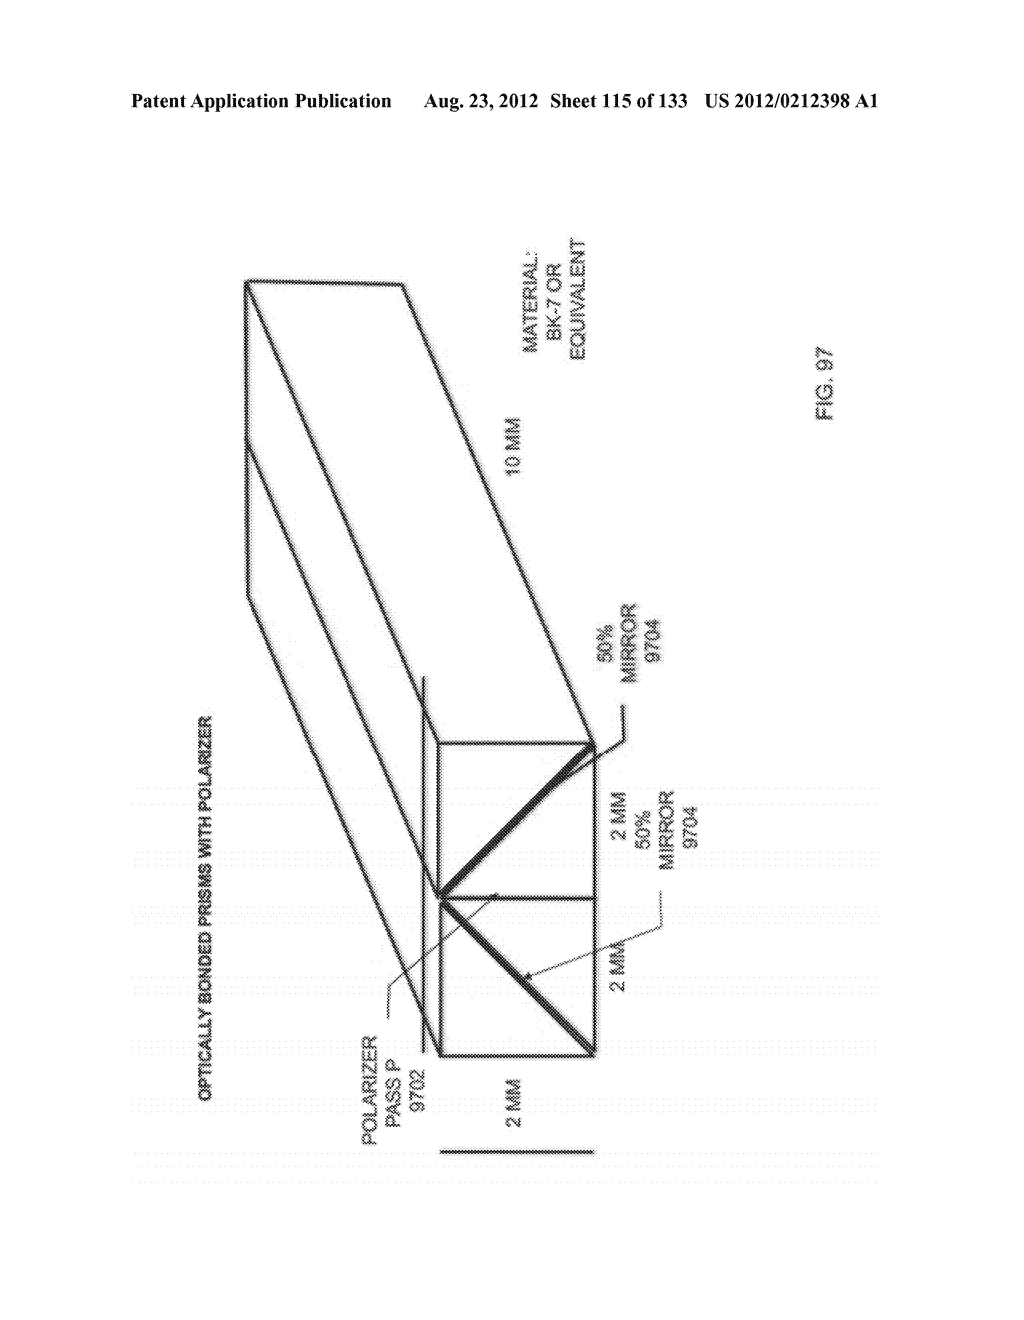 SEE-THROUGH NEAR-EYE DISPLAY GLASSES INCLUDING A PARTIALLY REFLECTIVE,     PARTIALLY TRANSMITTING OPTICAL ELEMENT - diagram, schematic, and image 116